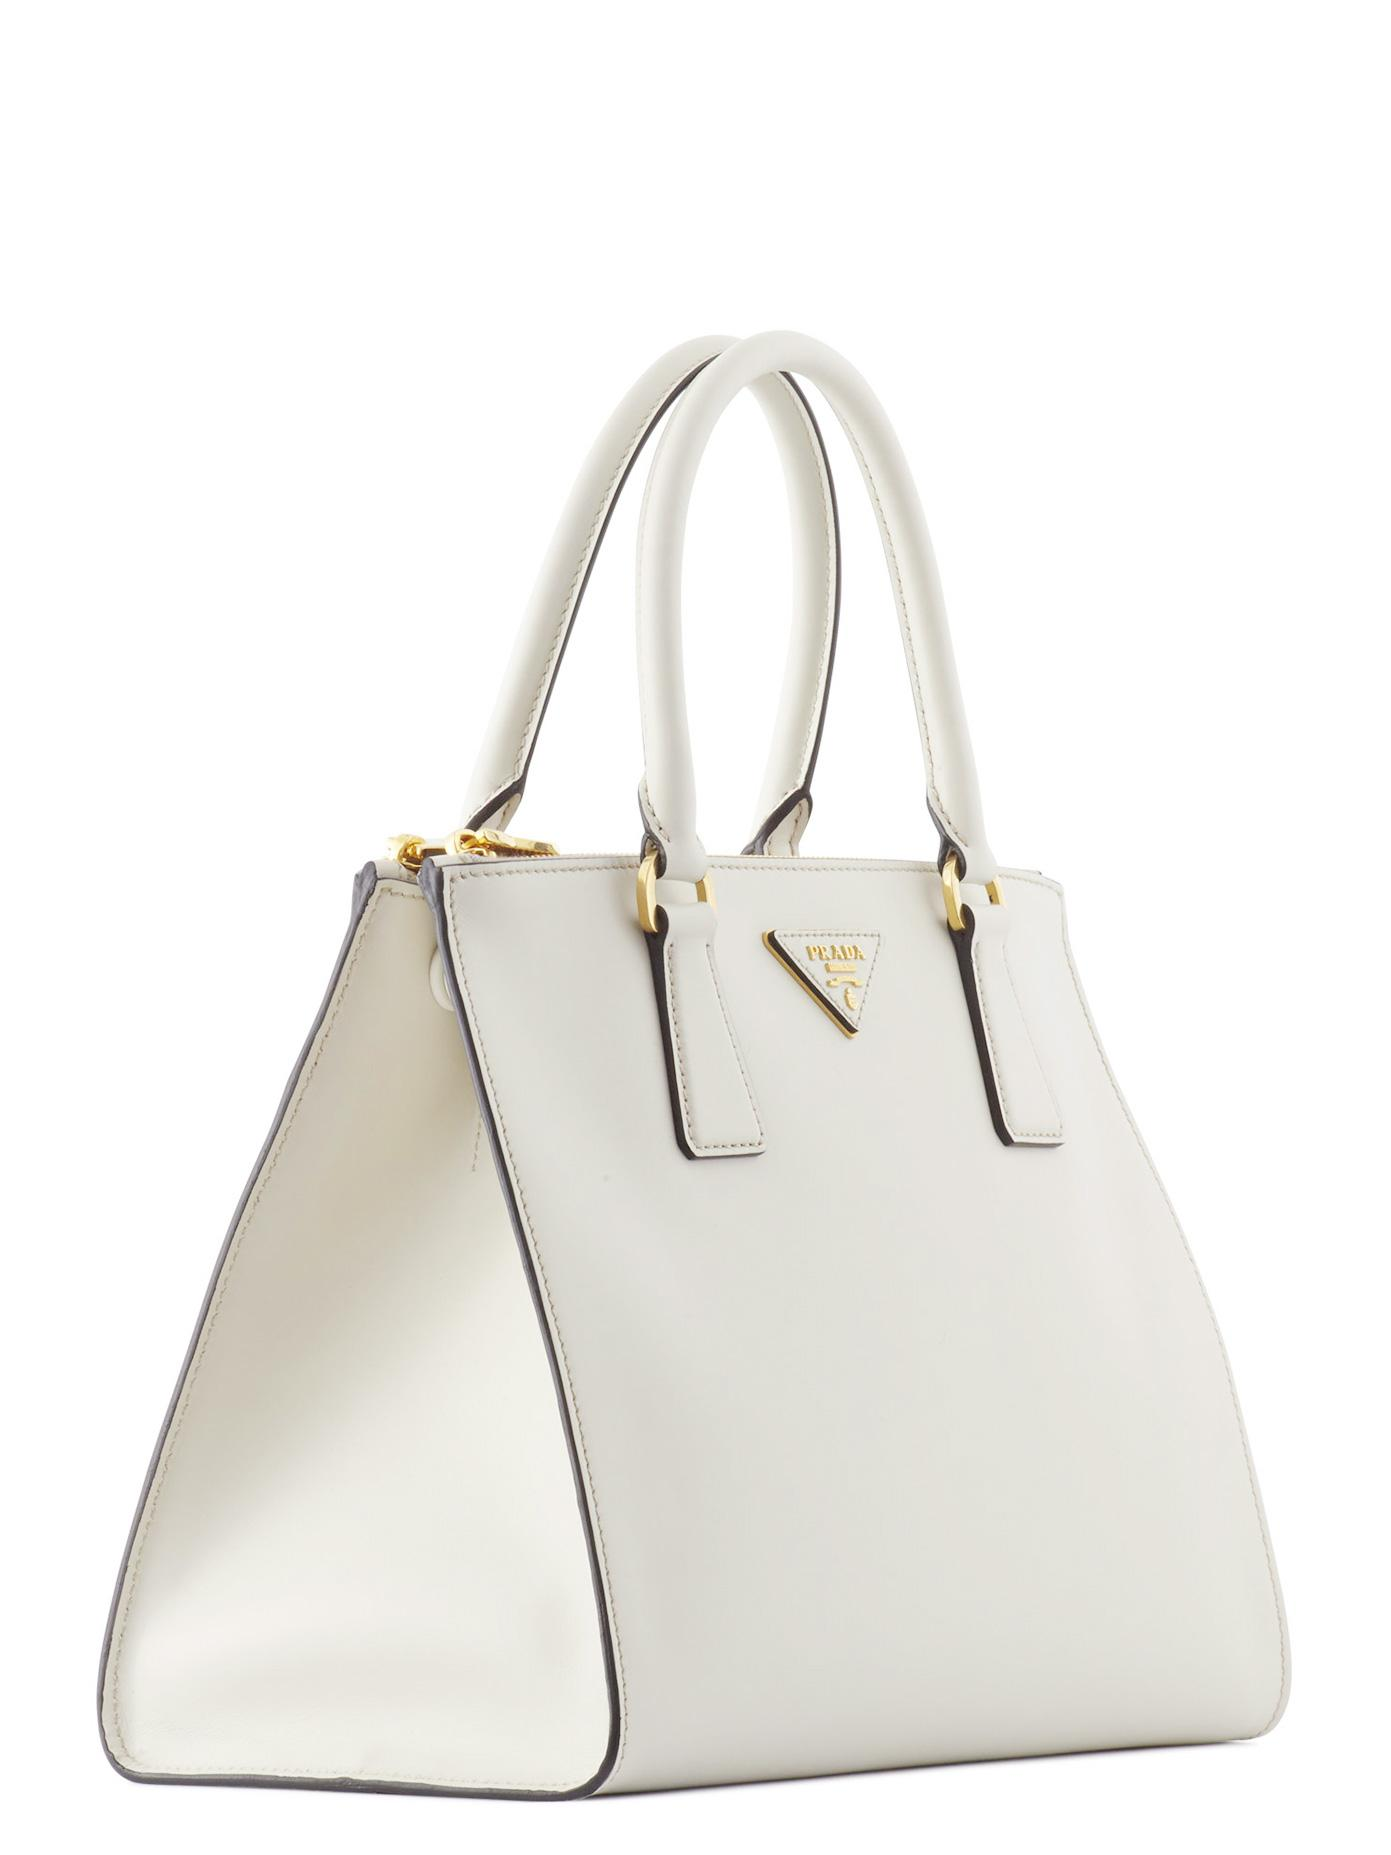 6a9cc1278a1f Prada Galleria Bag White | Stanford Center for Opportunity Policy in ...